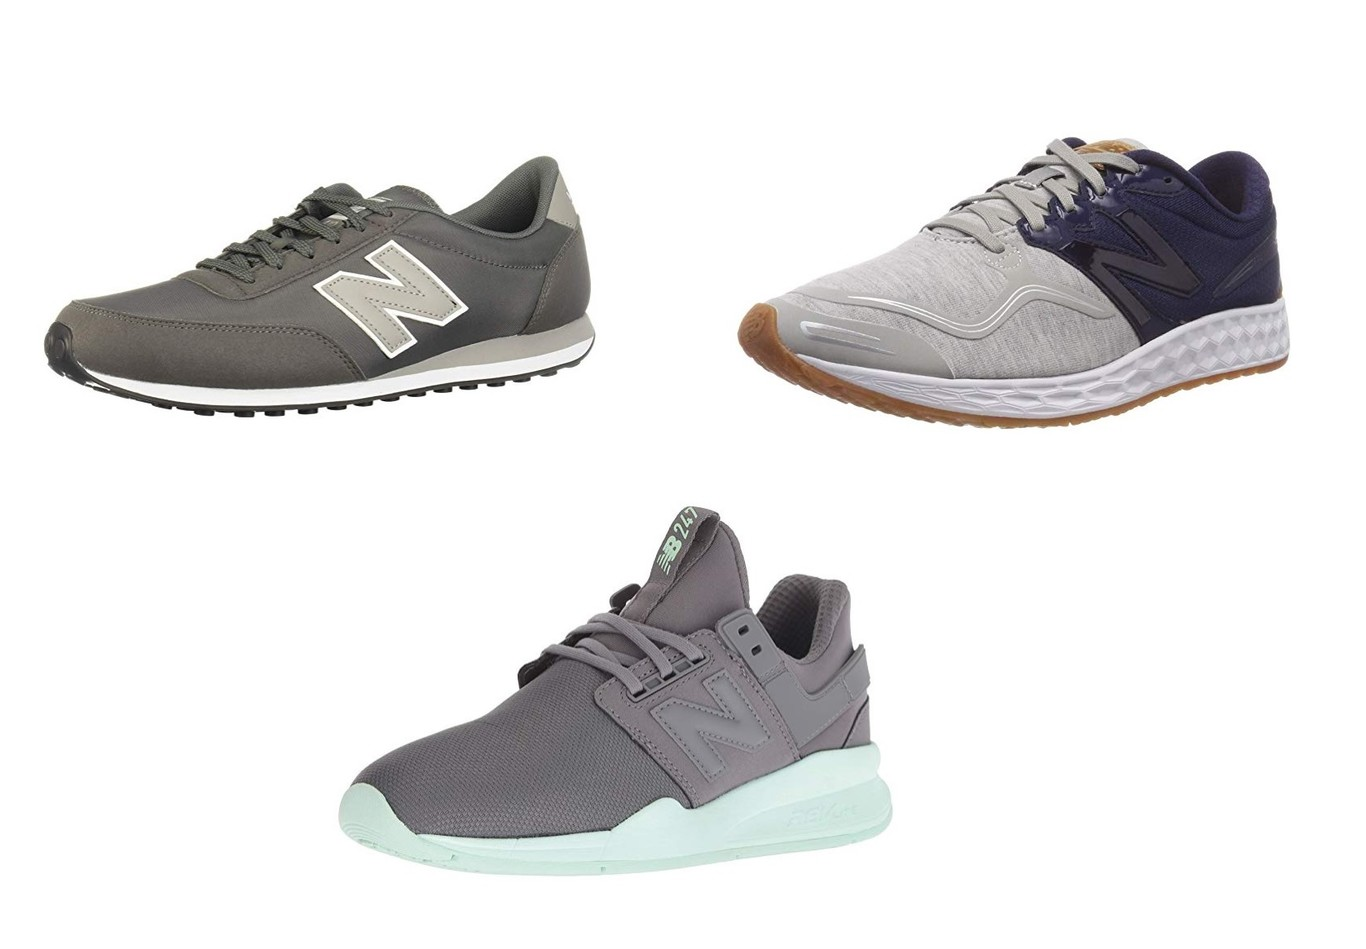 cheap for discount 97946 14a9b Chollos en tallas sueltas de zapatillas New Balance en Amazon